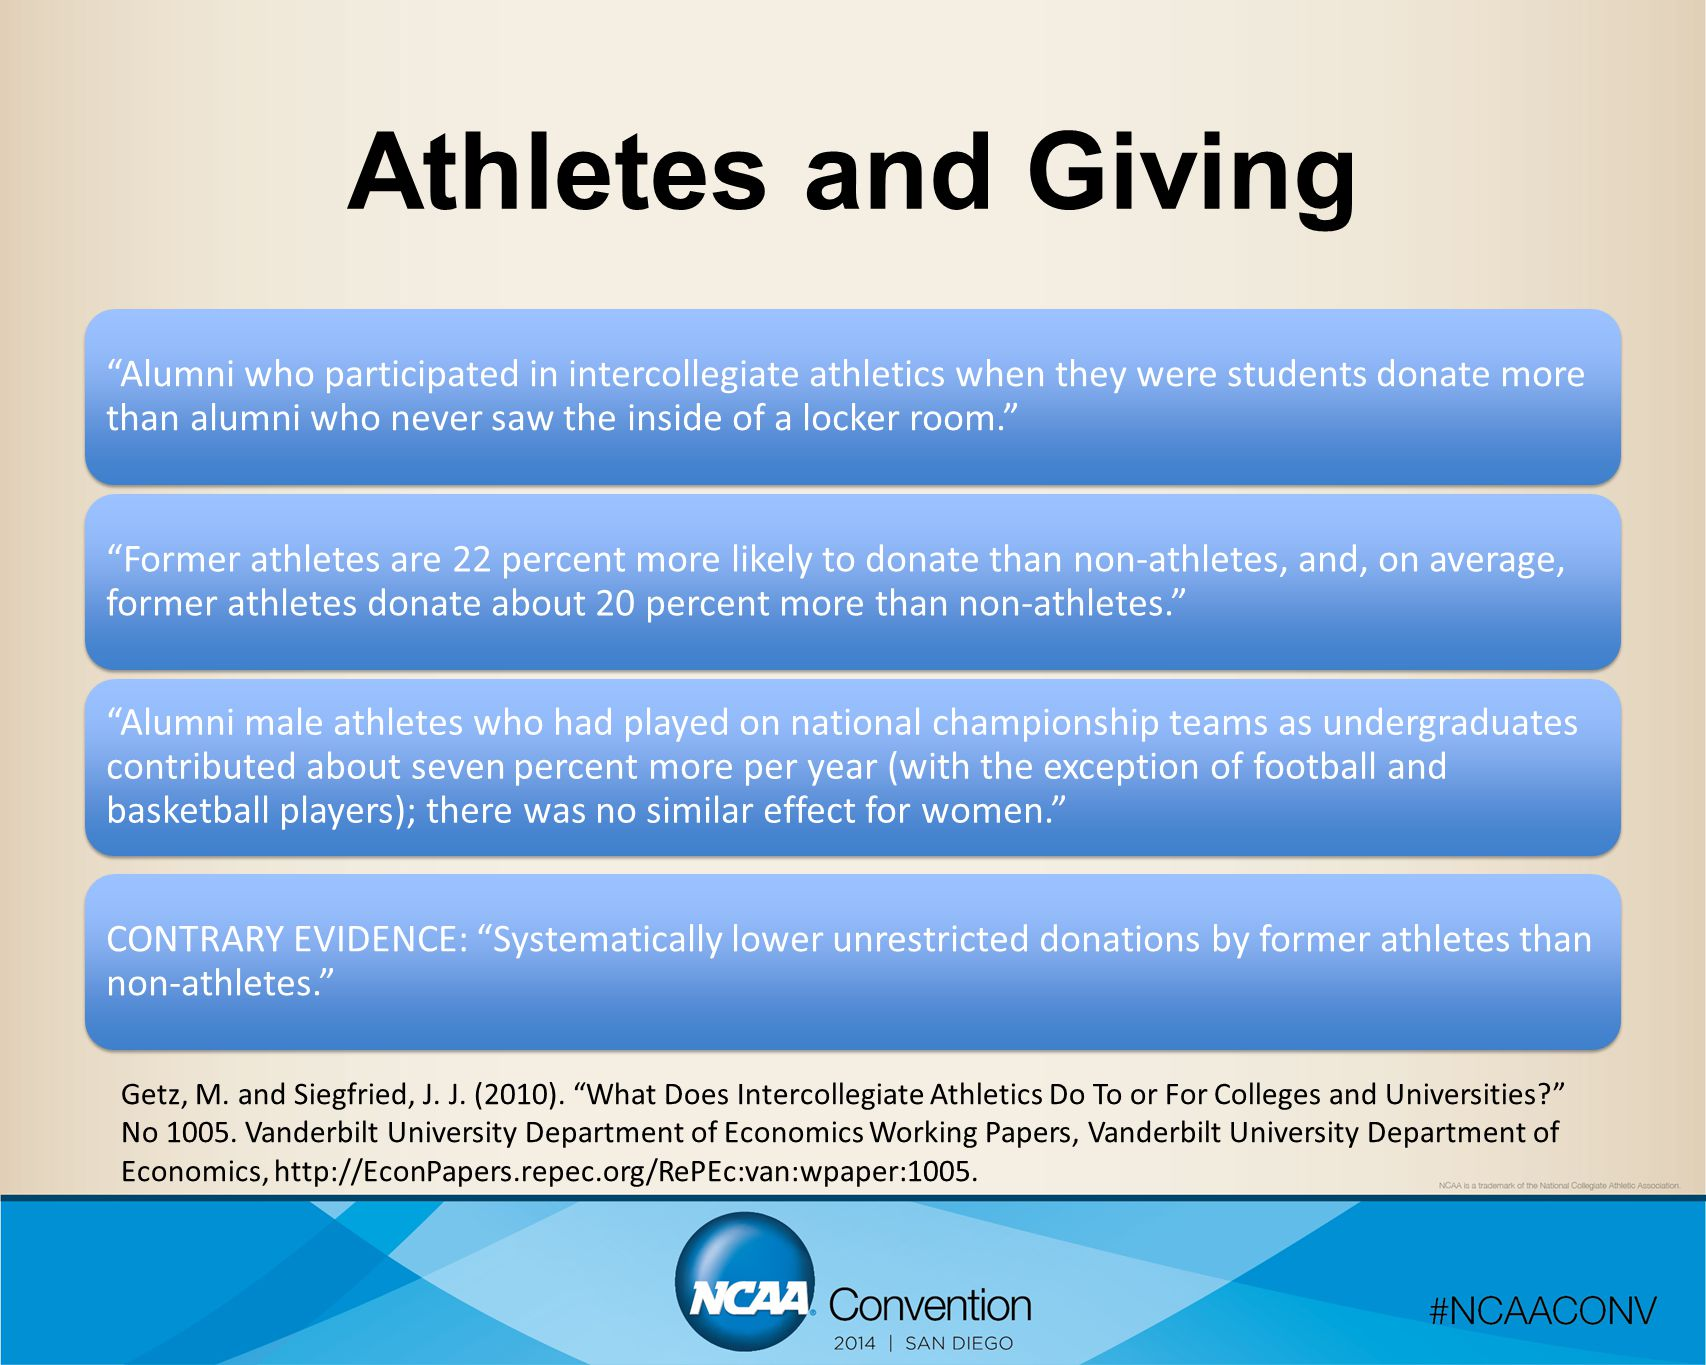 Athletes and Giving